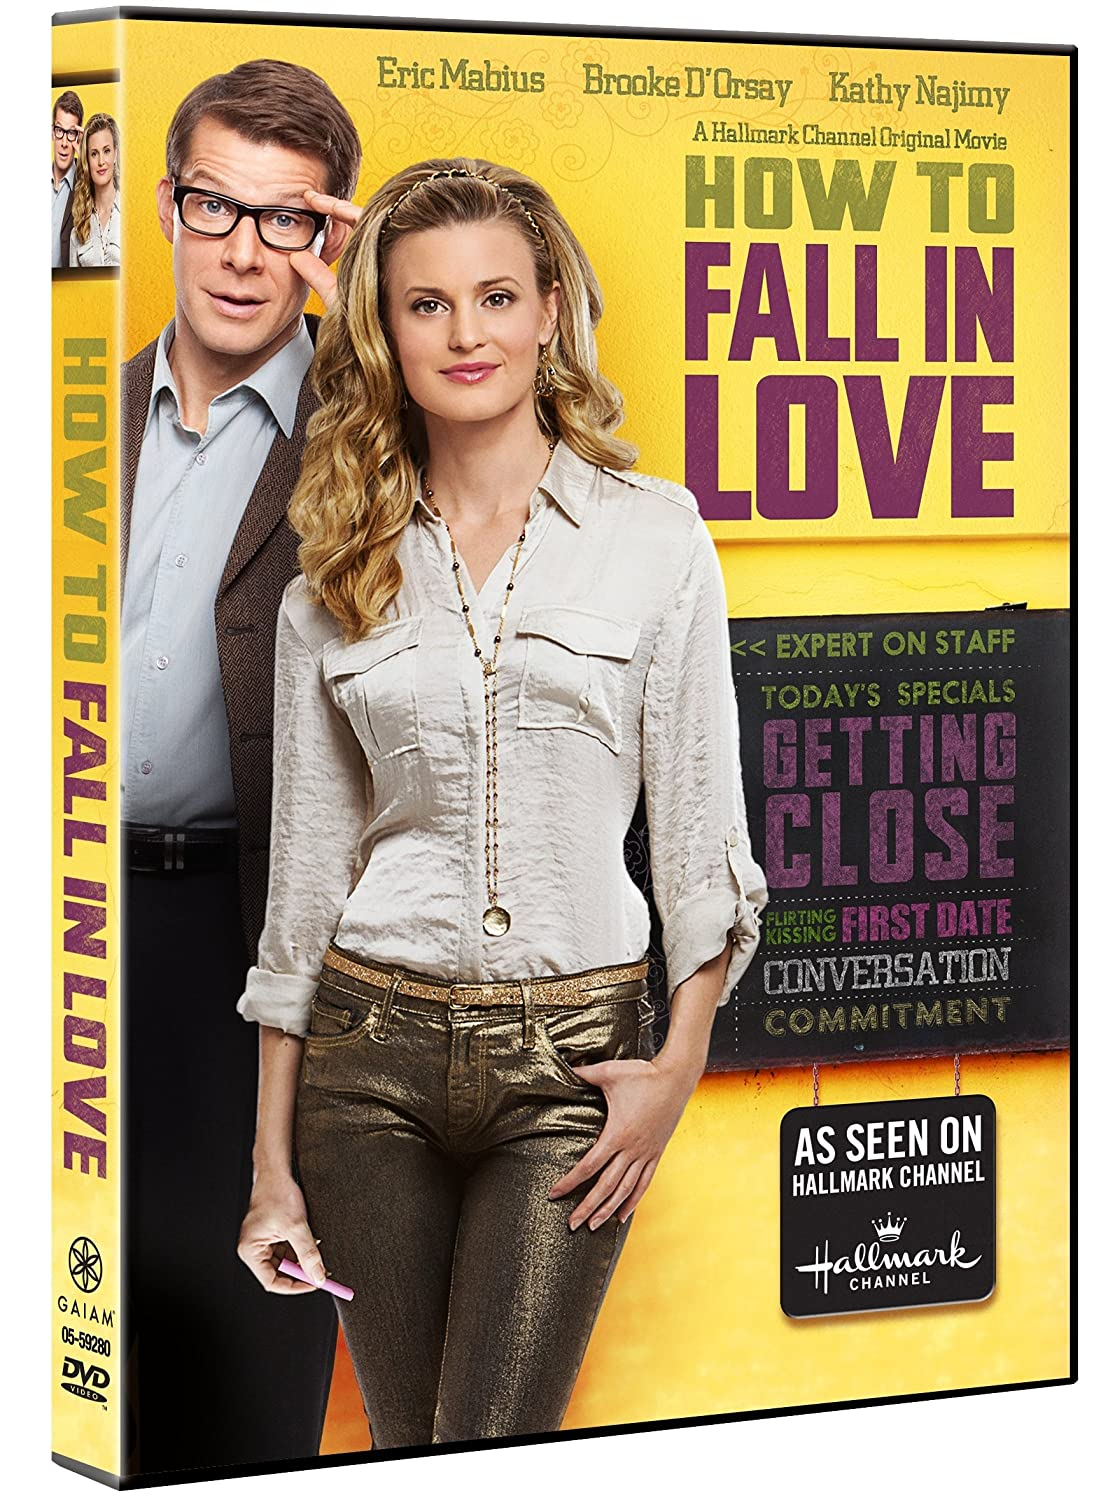 How to fall in love 2012